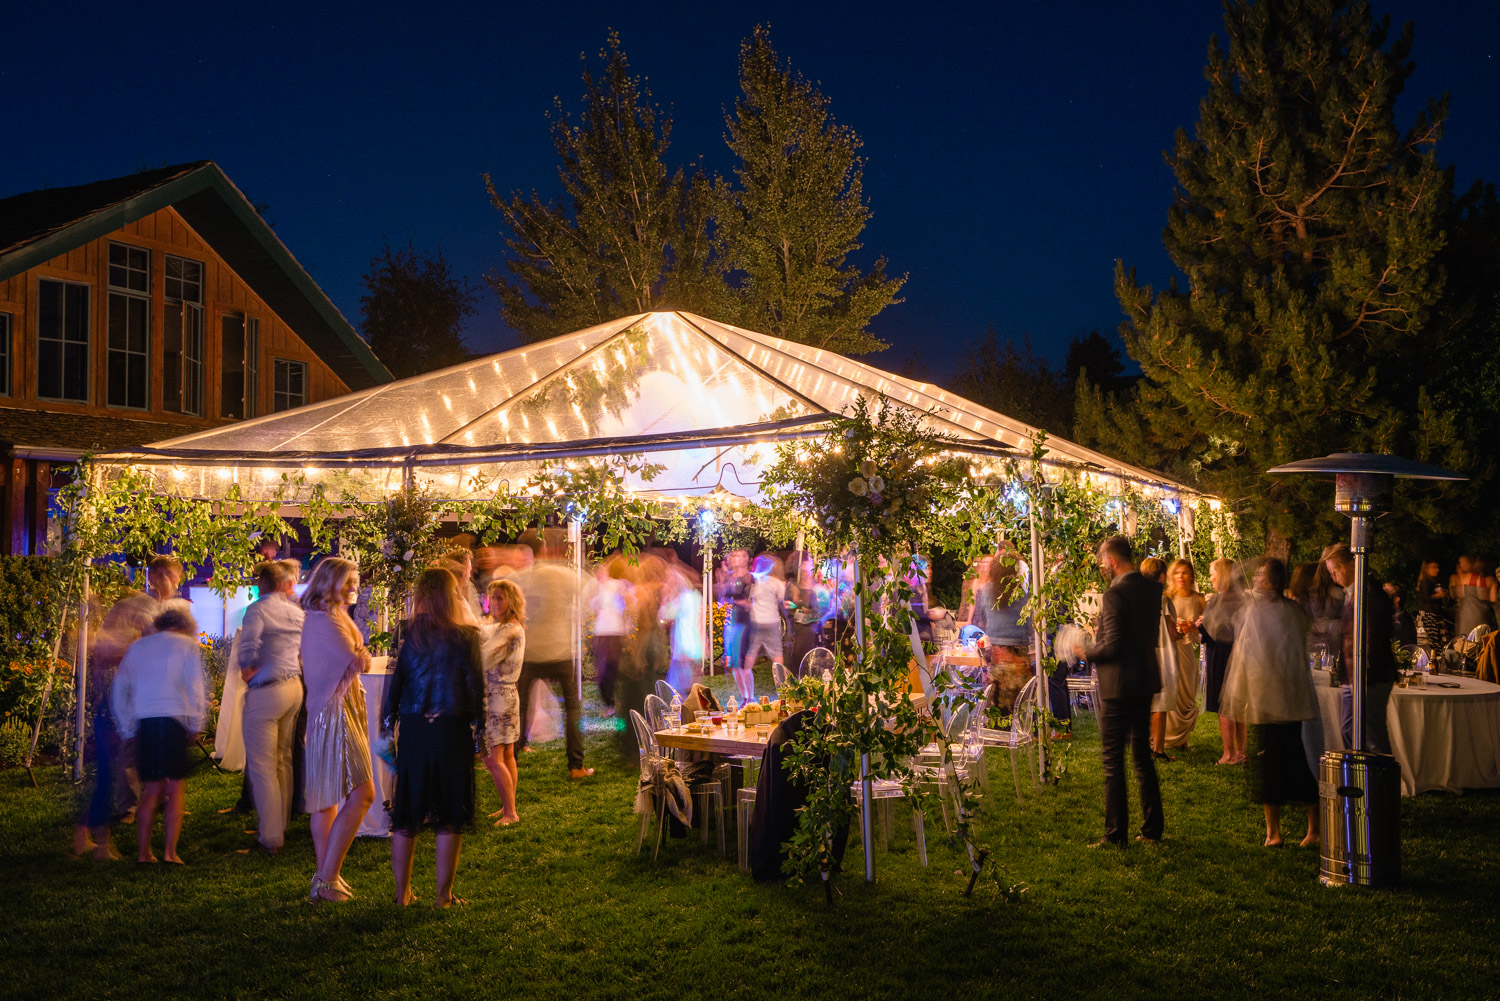 night sky outdoor wedding party under tent park city